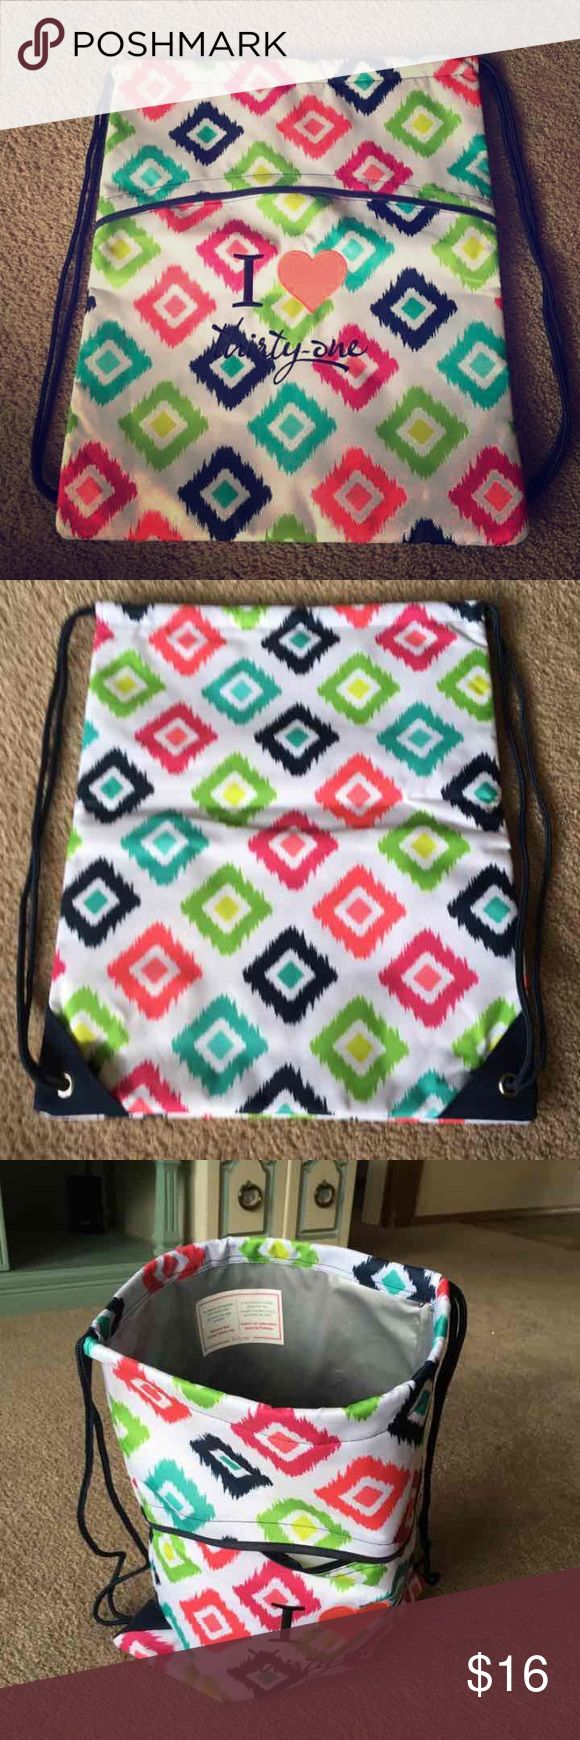 "Cinch Sac •drawstring closure •exterior zipper pocket •approx 18.5""H x 14.5""L Thirty One Bags Backpacks"